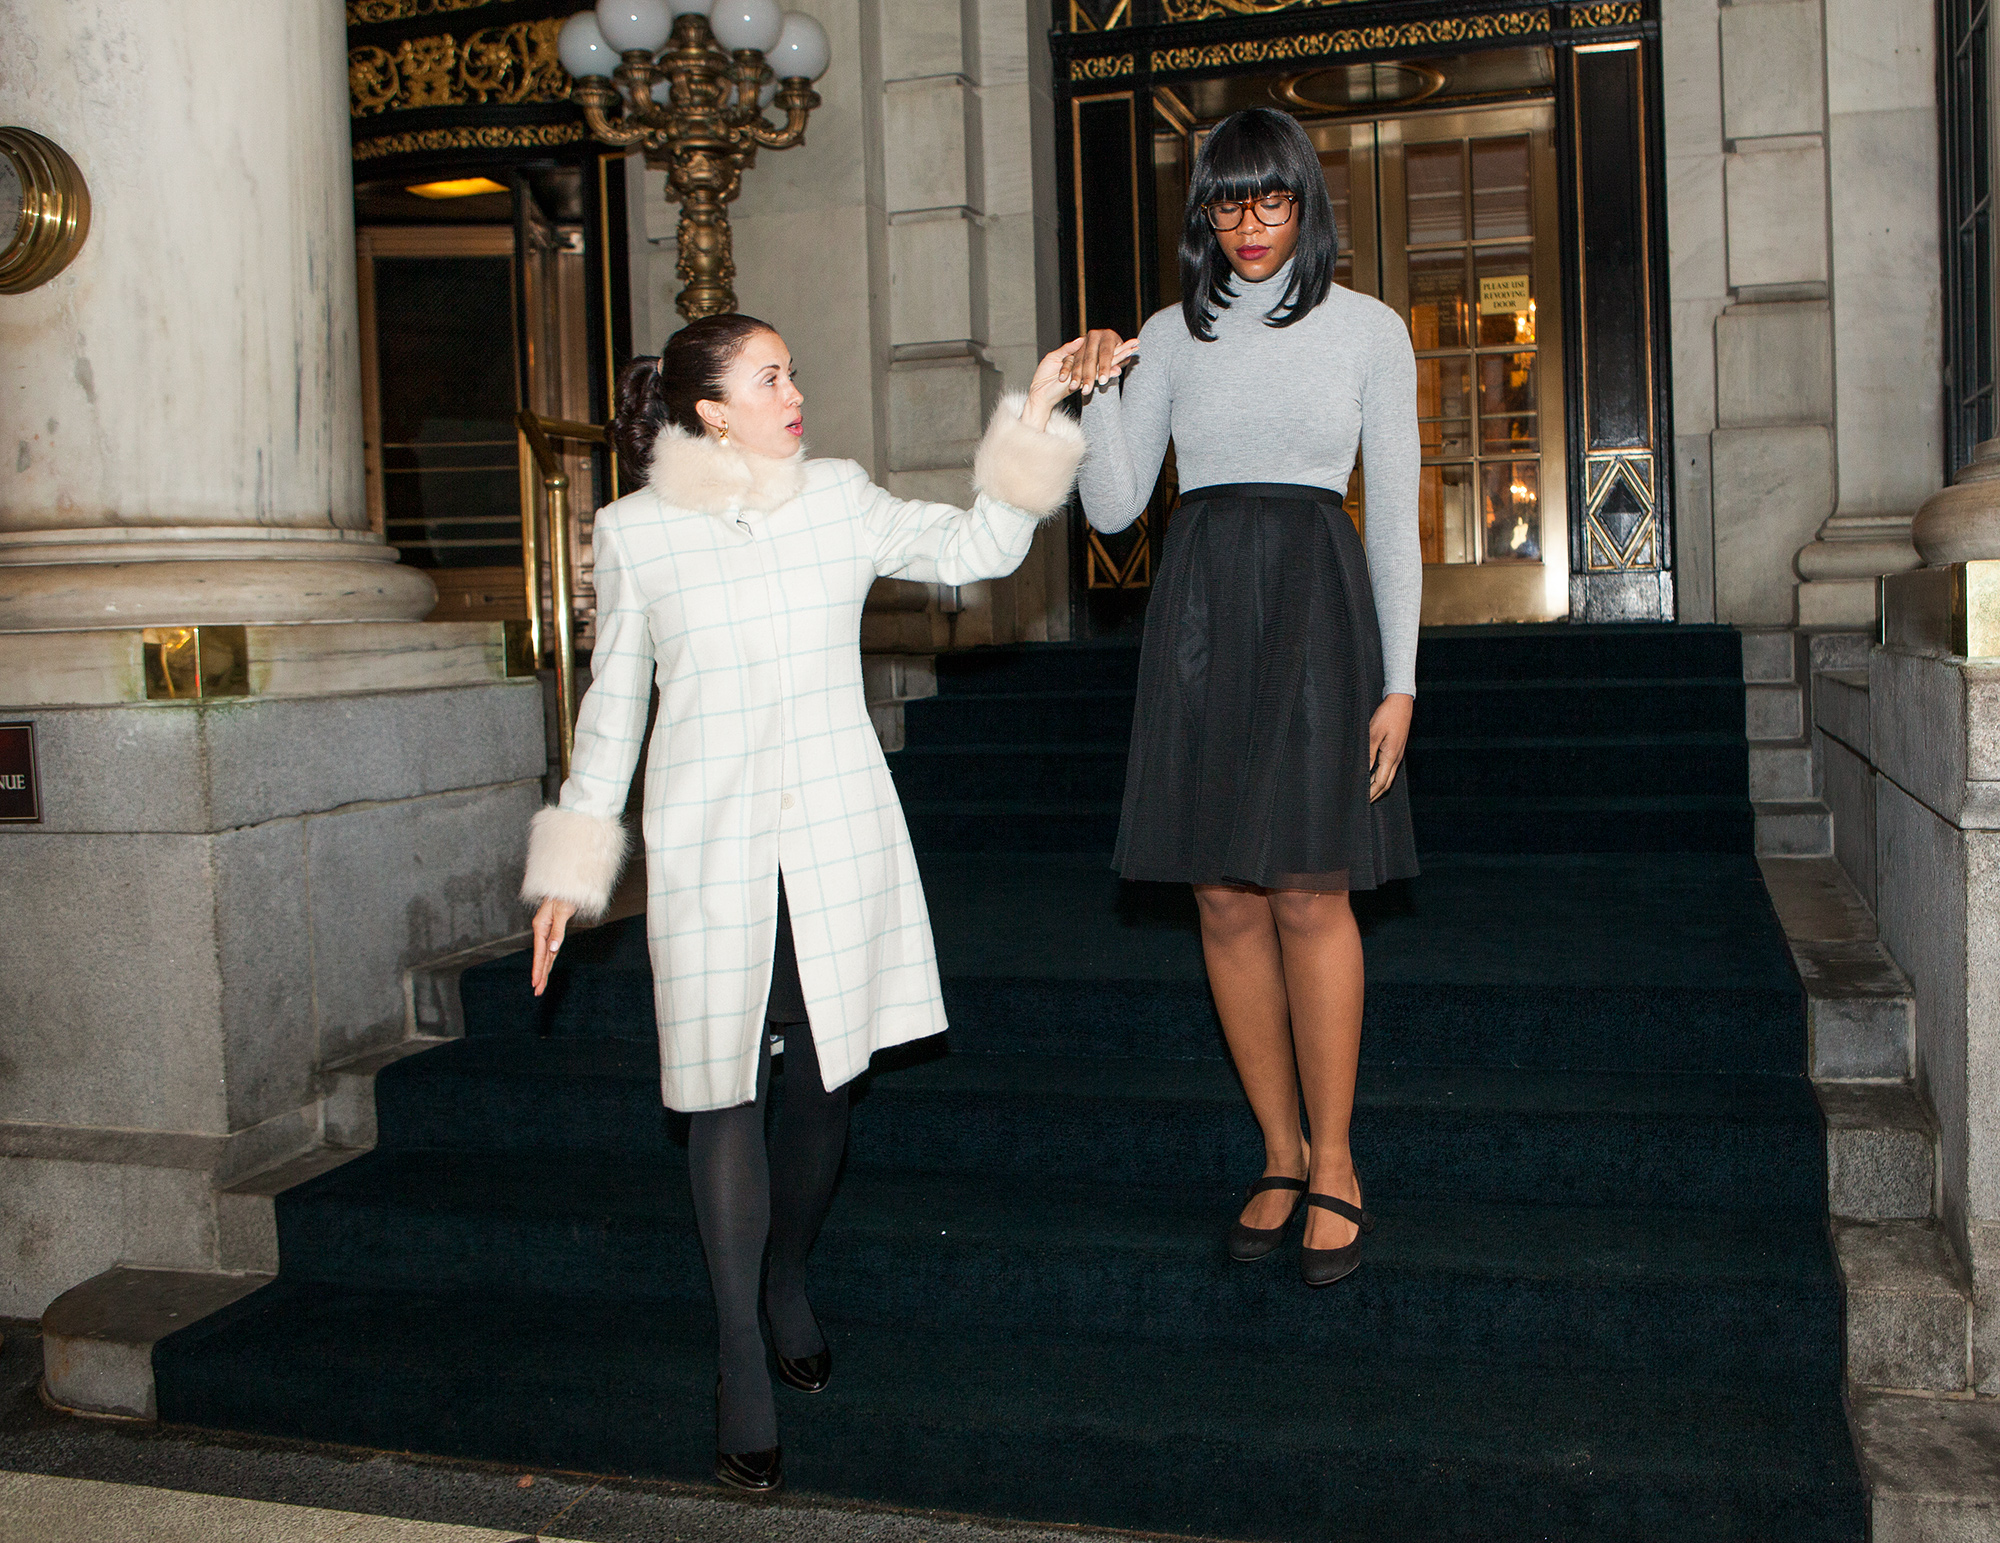 People,com editor Char Adams Royal Etiquette training at the Plaza Hotel in New York City on Jan 17, 2017.